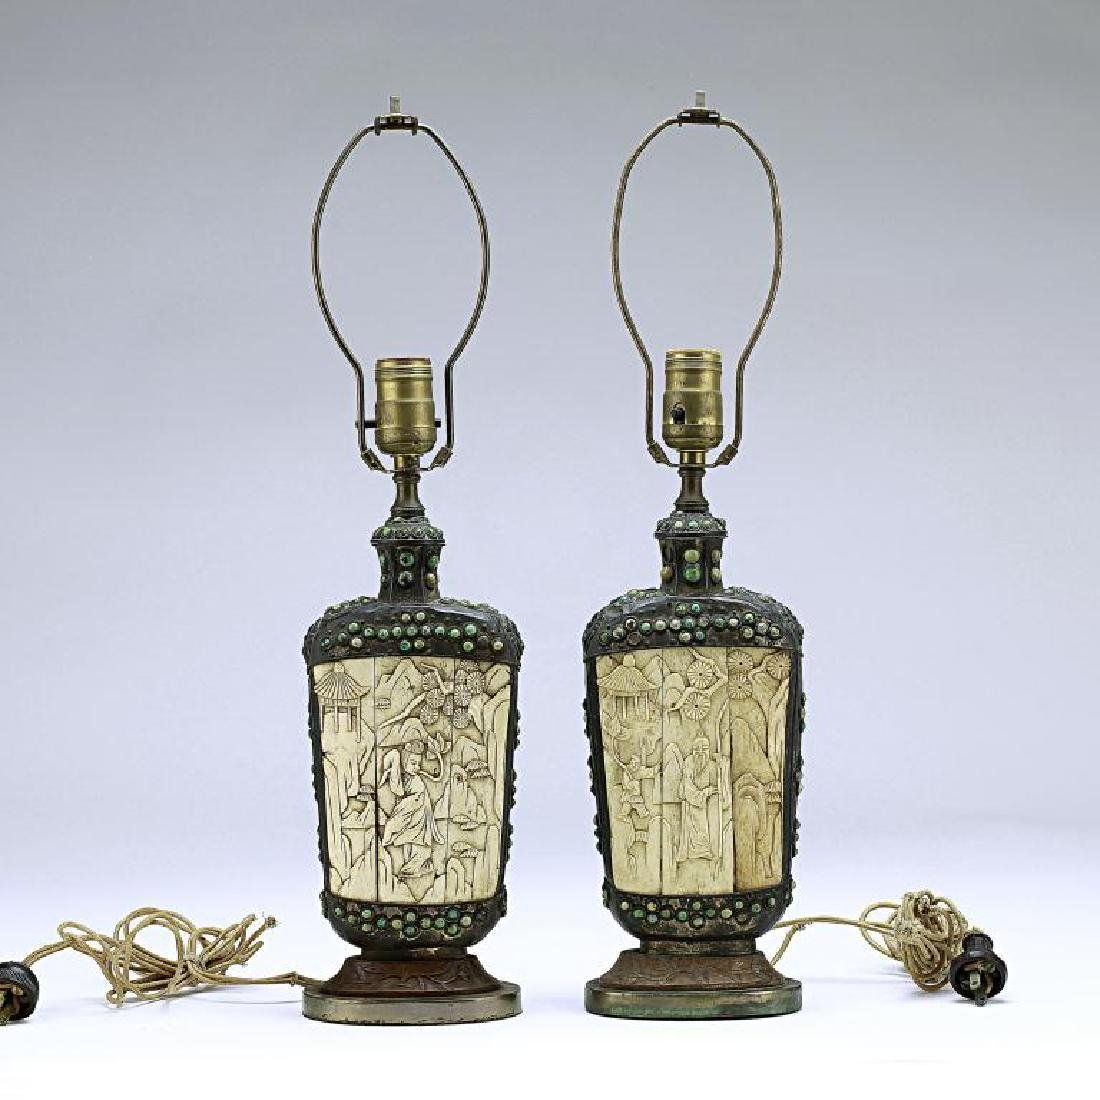 PAIR OF MONGOLIAN SILVERED FLASKS